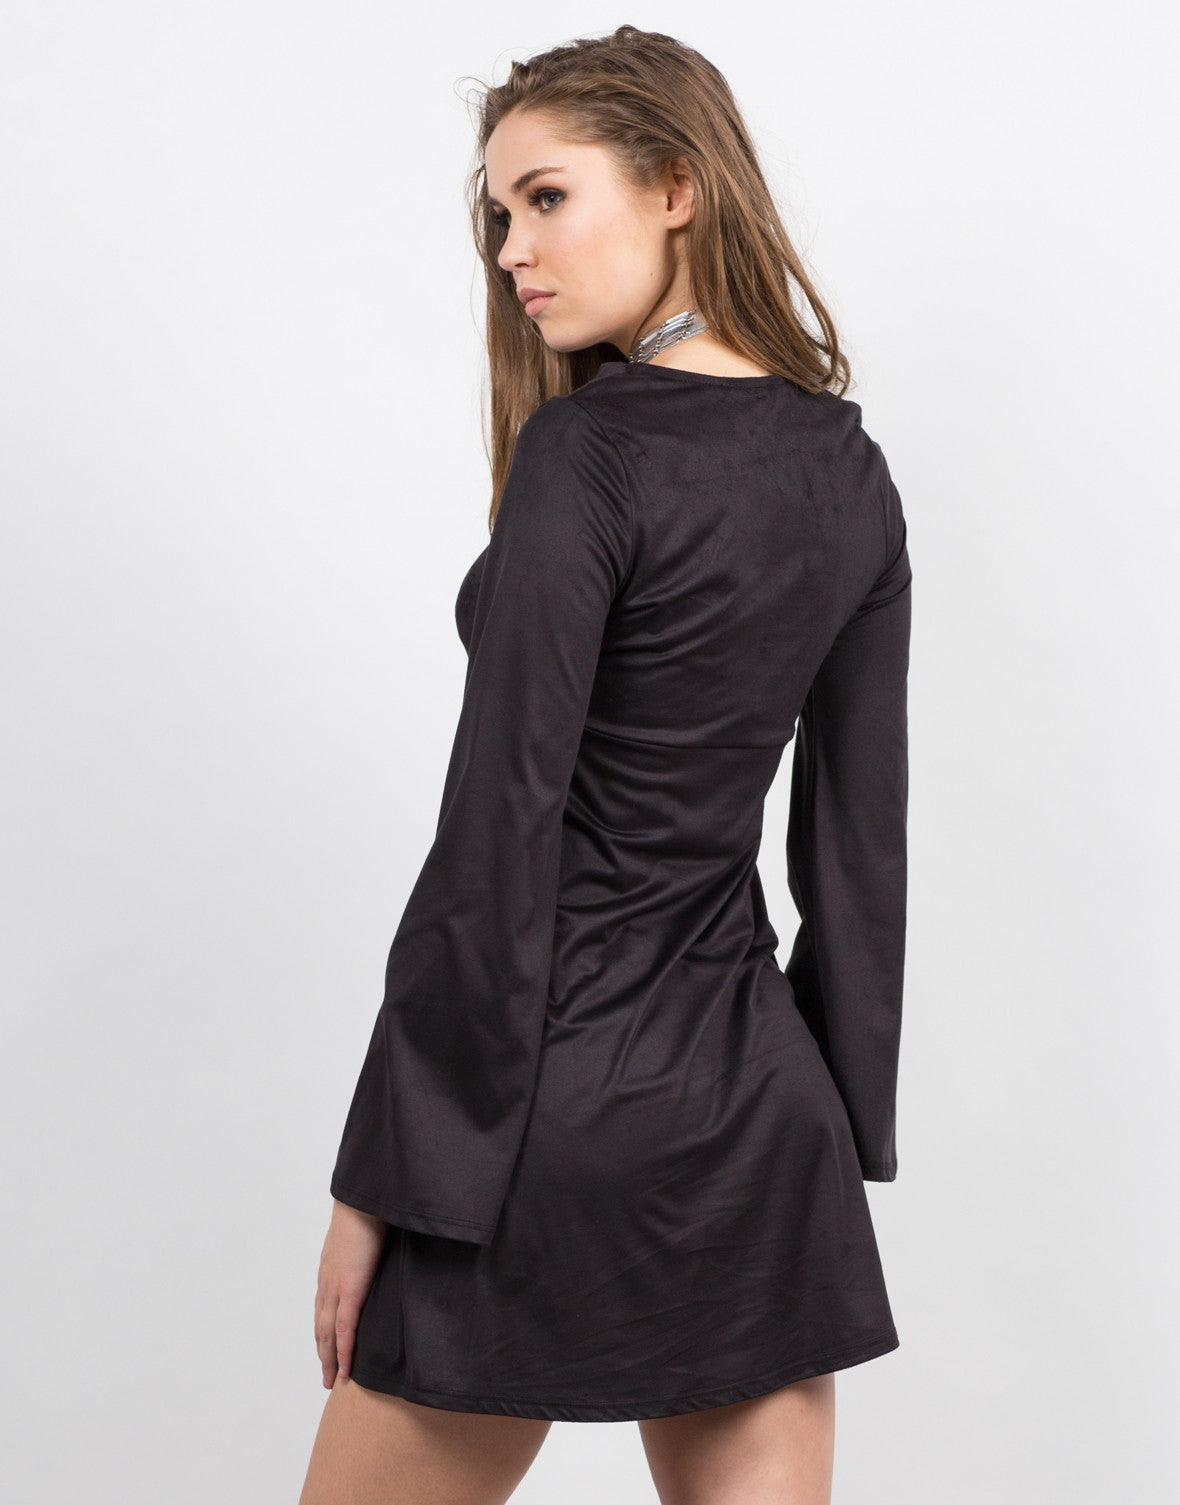 Back View of Lace Up and Suede Dress